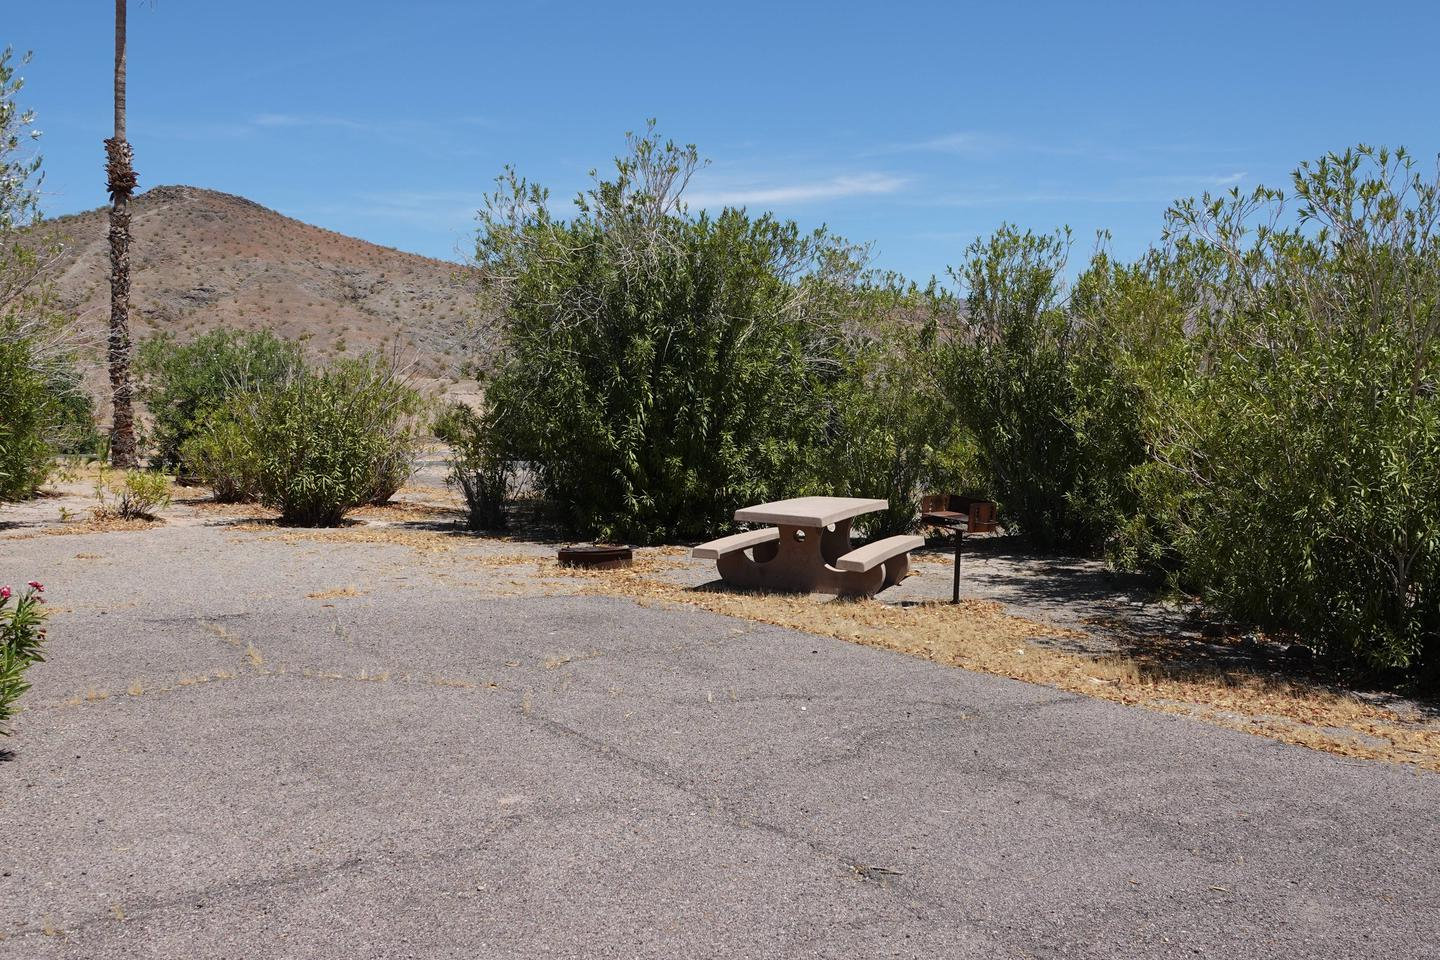 Campsite located in a desert setting2Callville Bay Campground Site 24